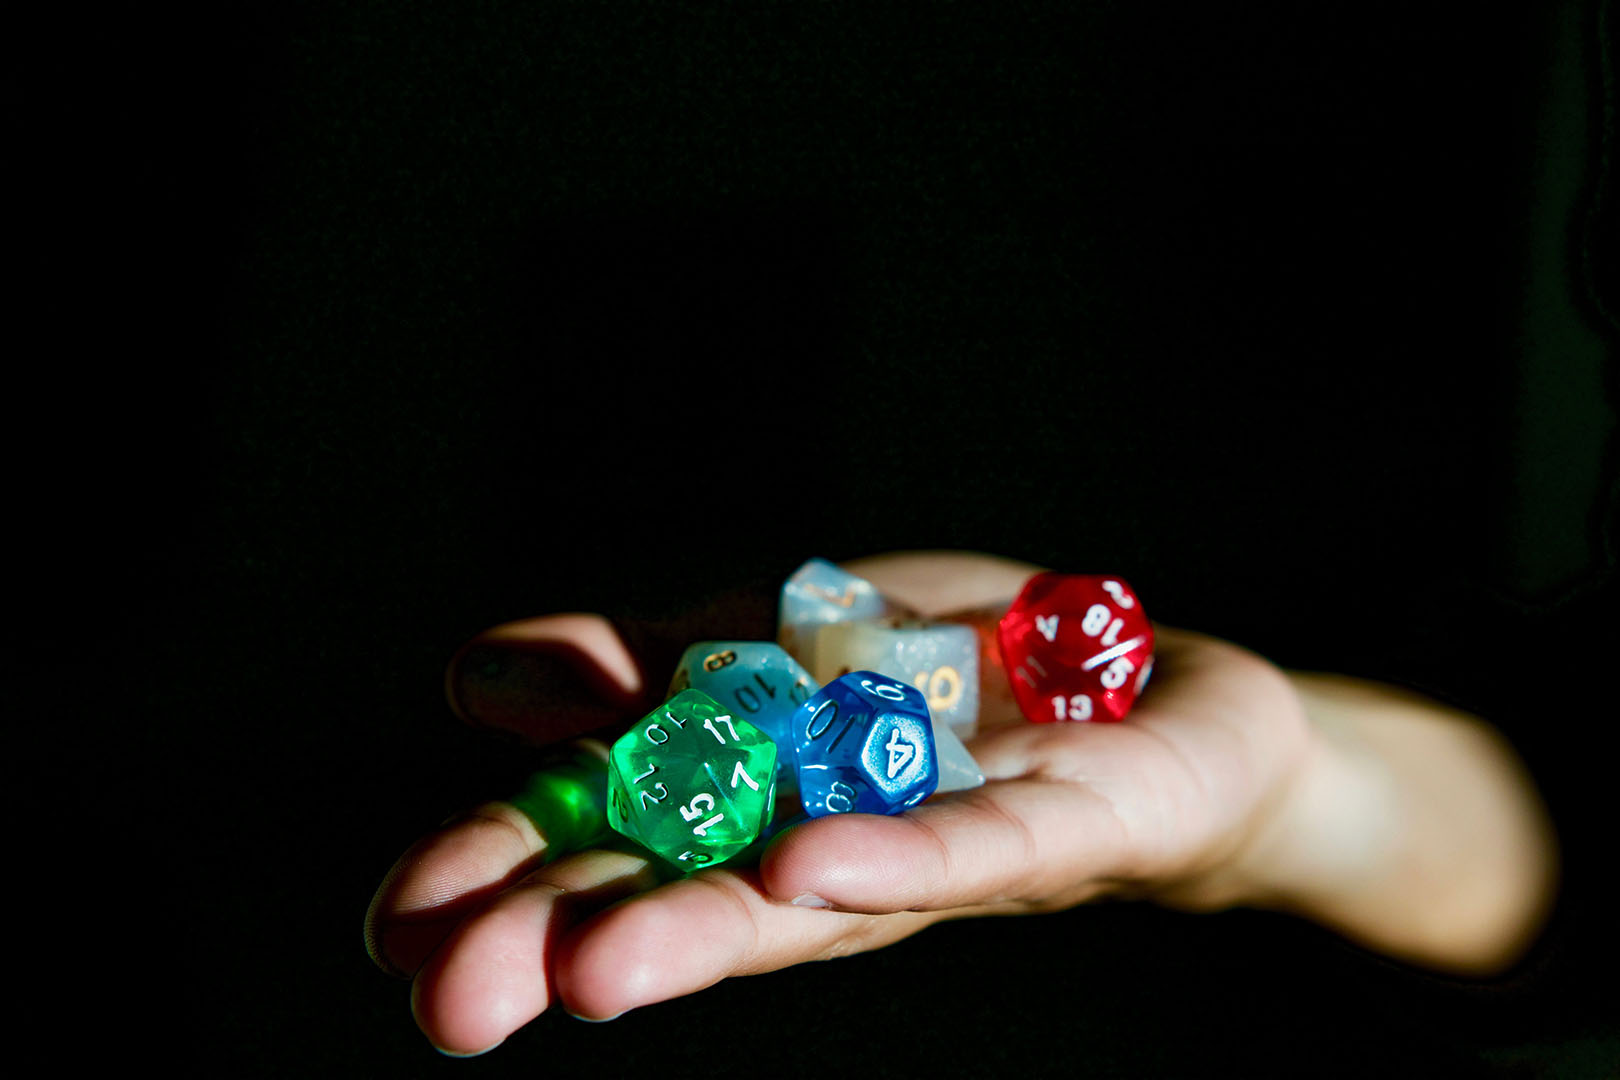 Behavioral economics and motivation research: Trying to understand decision-making without context can be like rolling dice